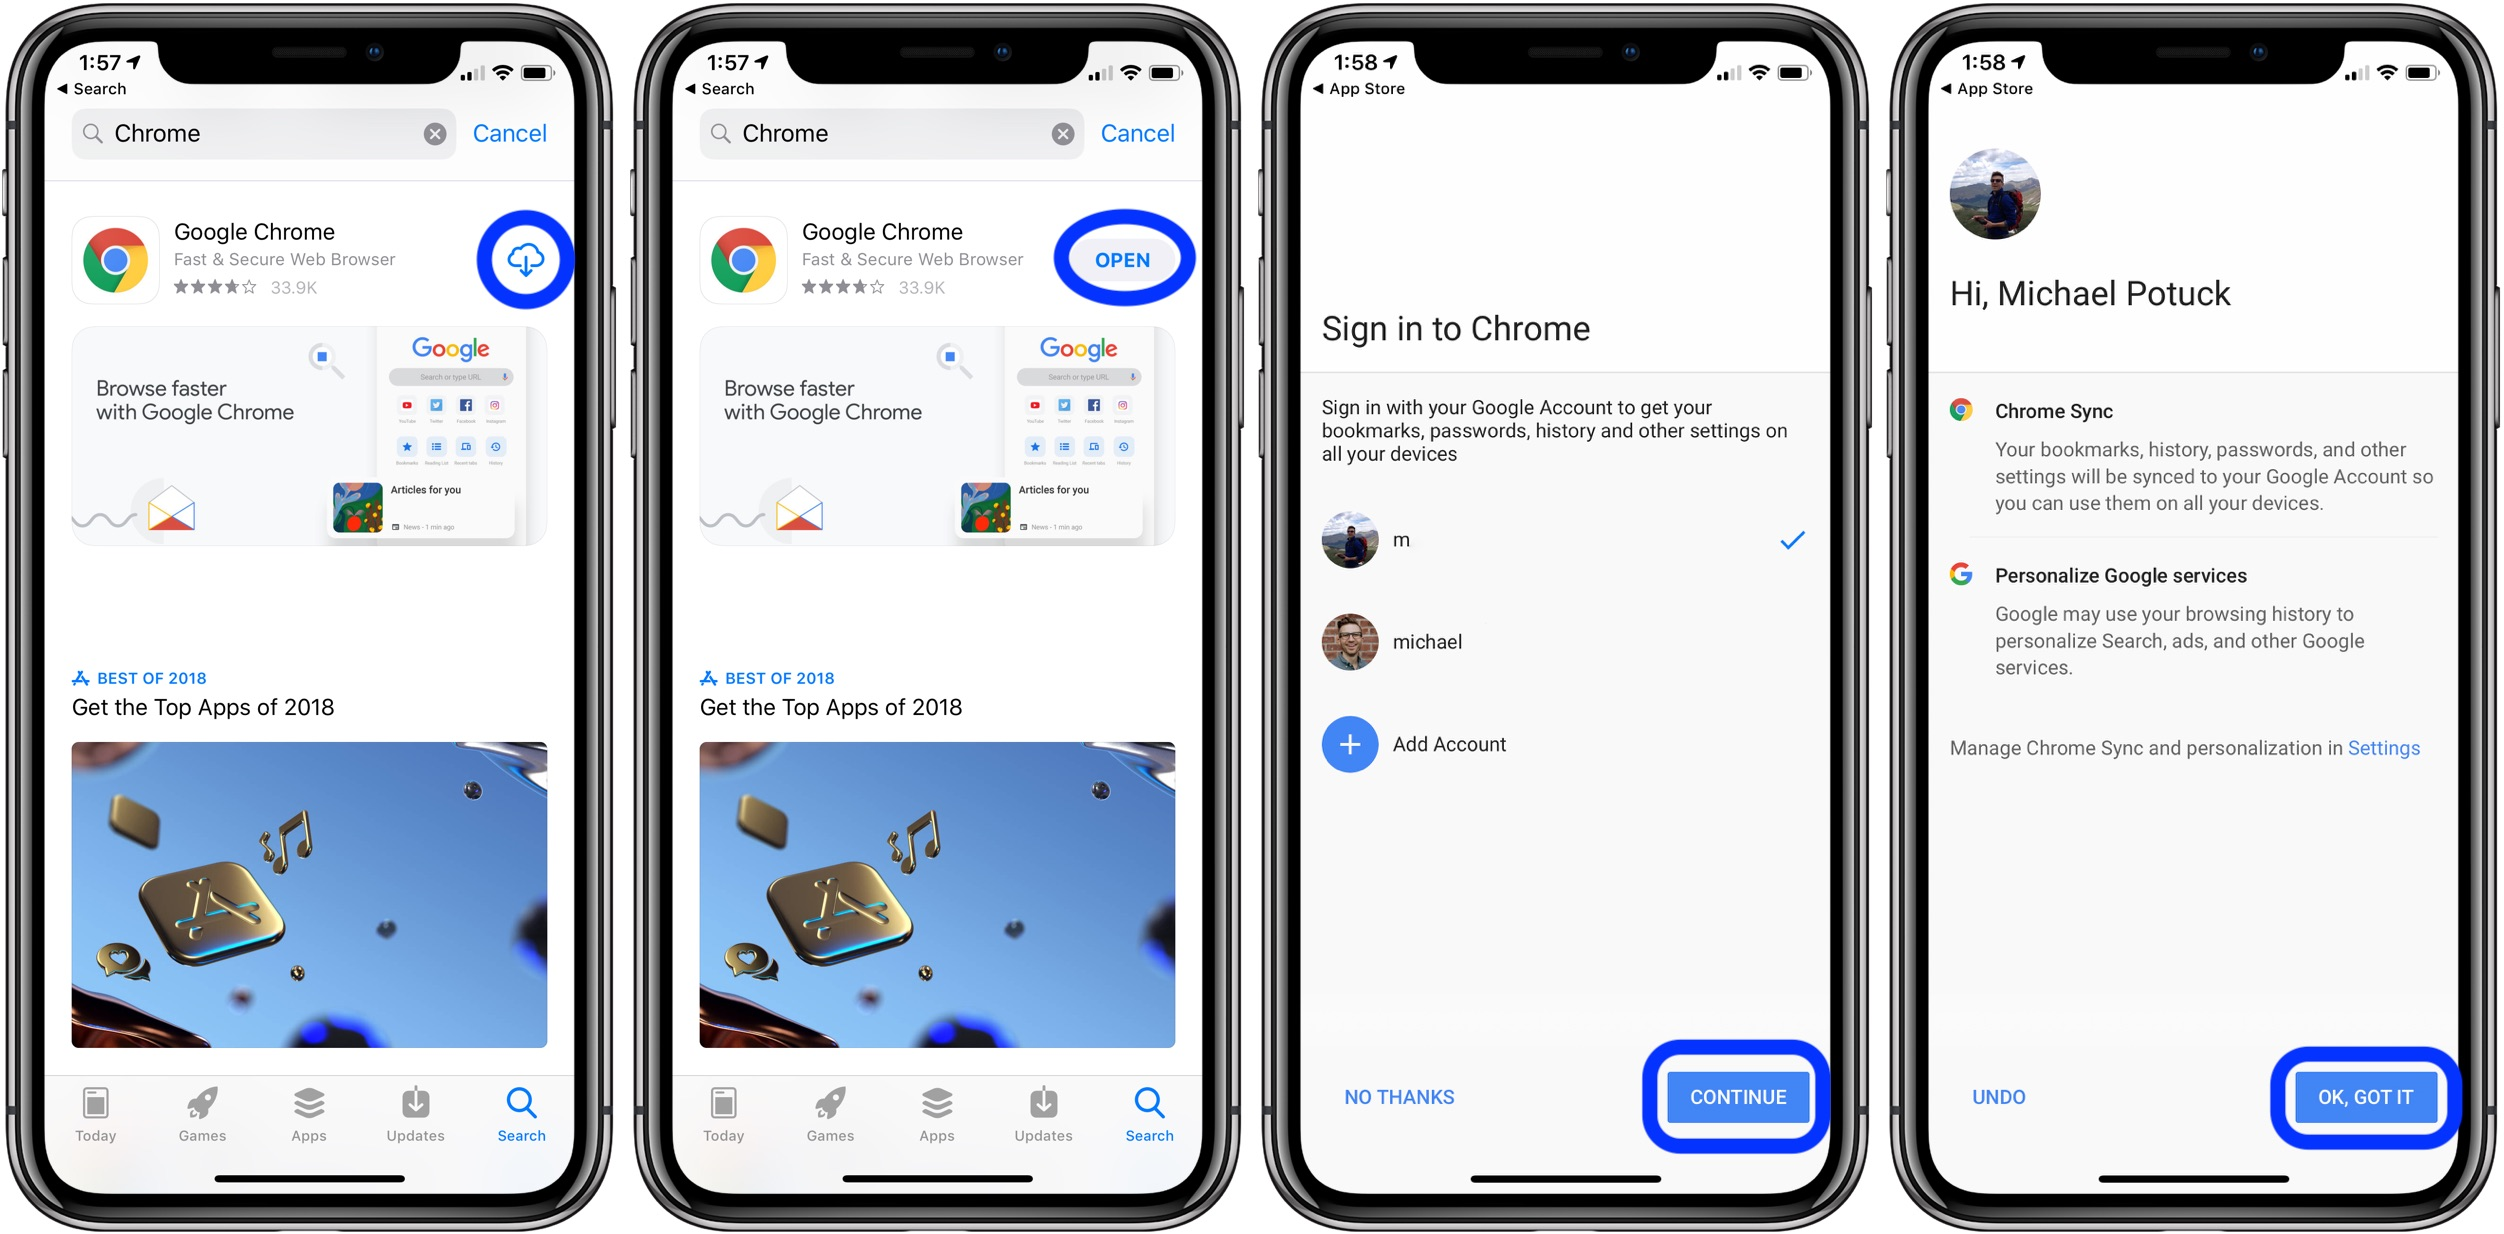 How to use Google's Chrome browser on iPhone - 9to5Mac